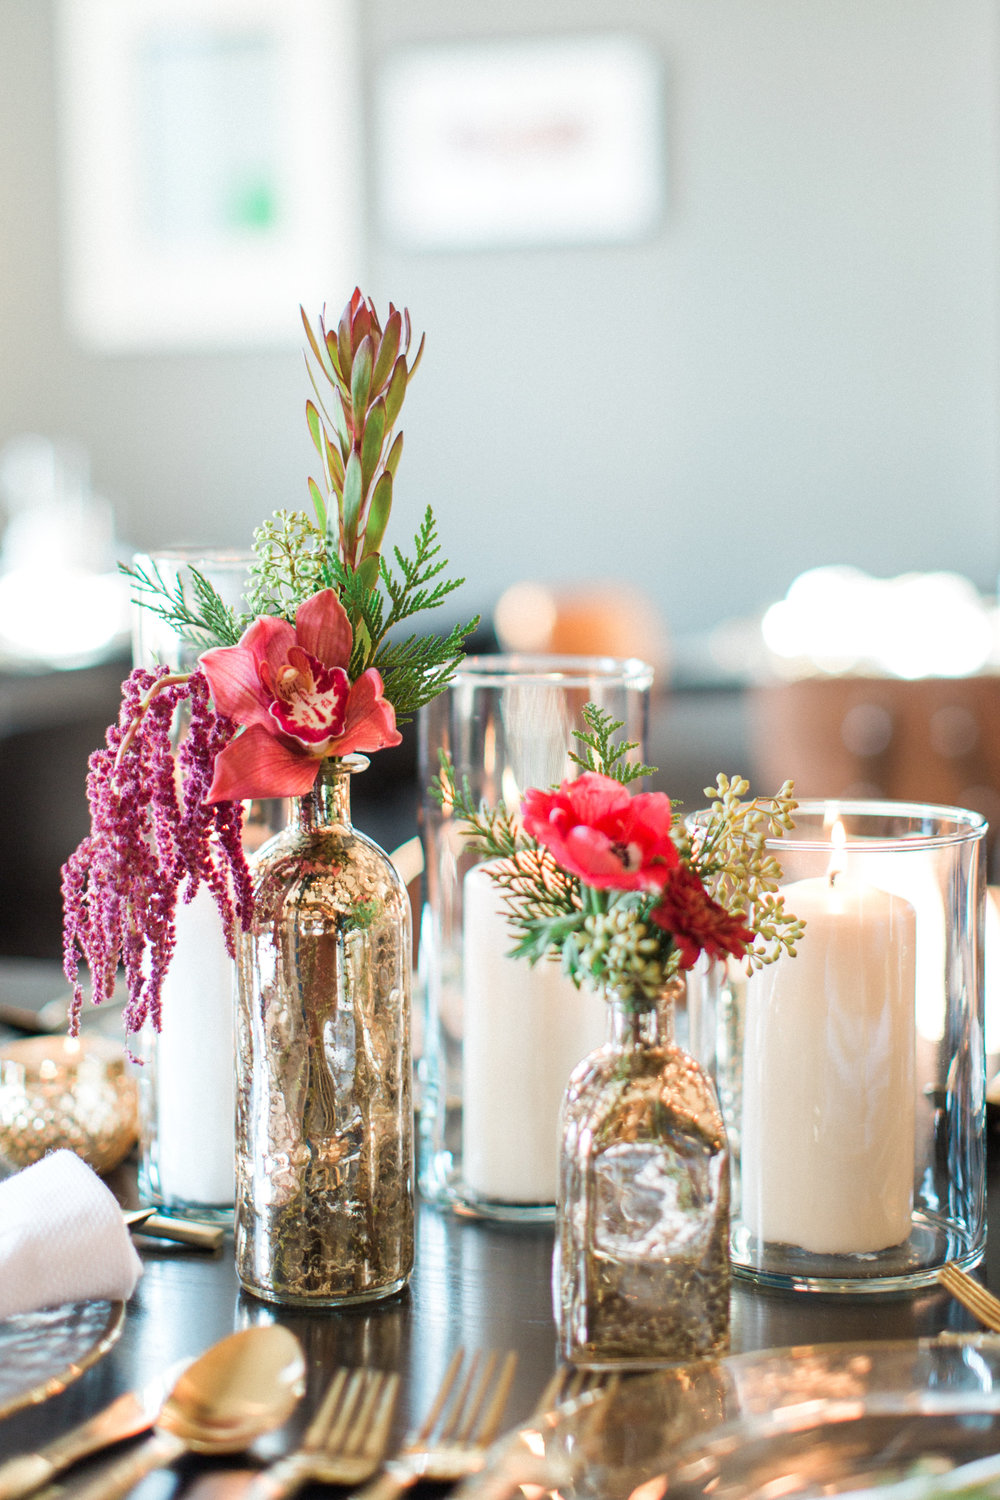 Get the look: Glass candleholder